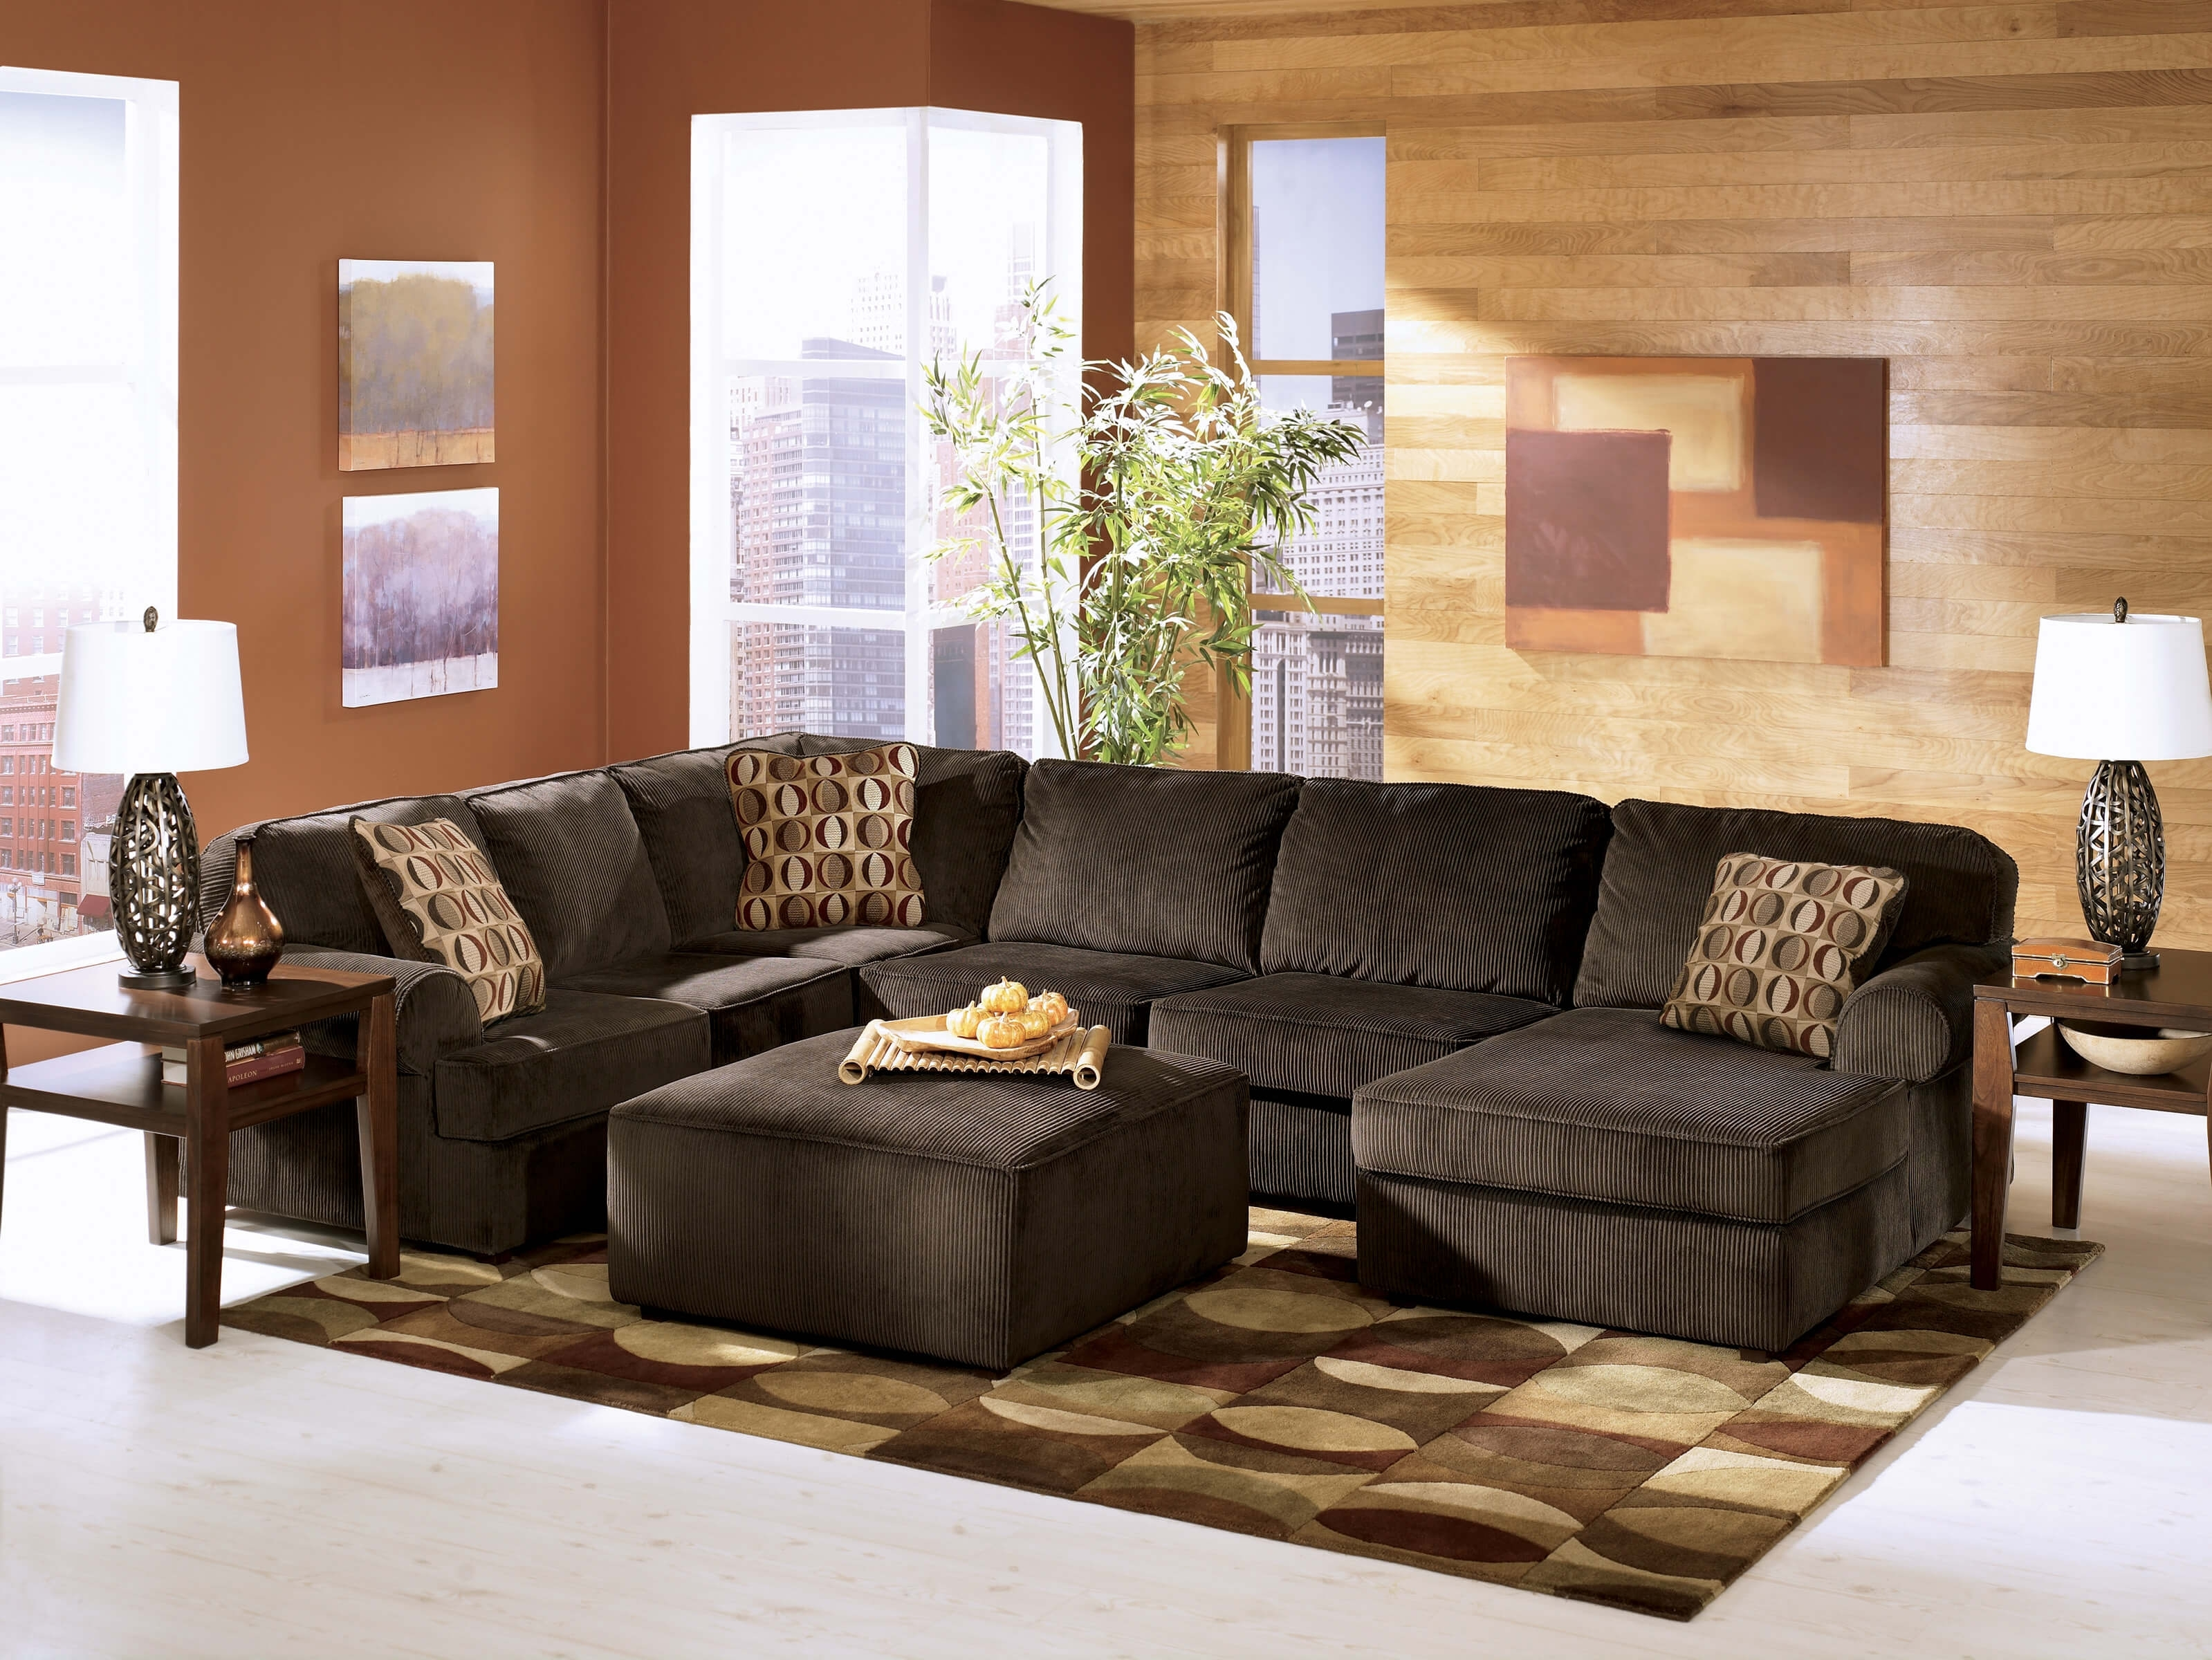 Ashley Furniture Sectional Sofa, Ashley Furniture Brown Sectional intended for Sectional Sofas At Ashley (Image 6 of 15)